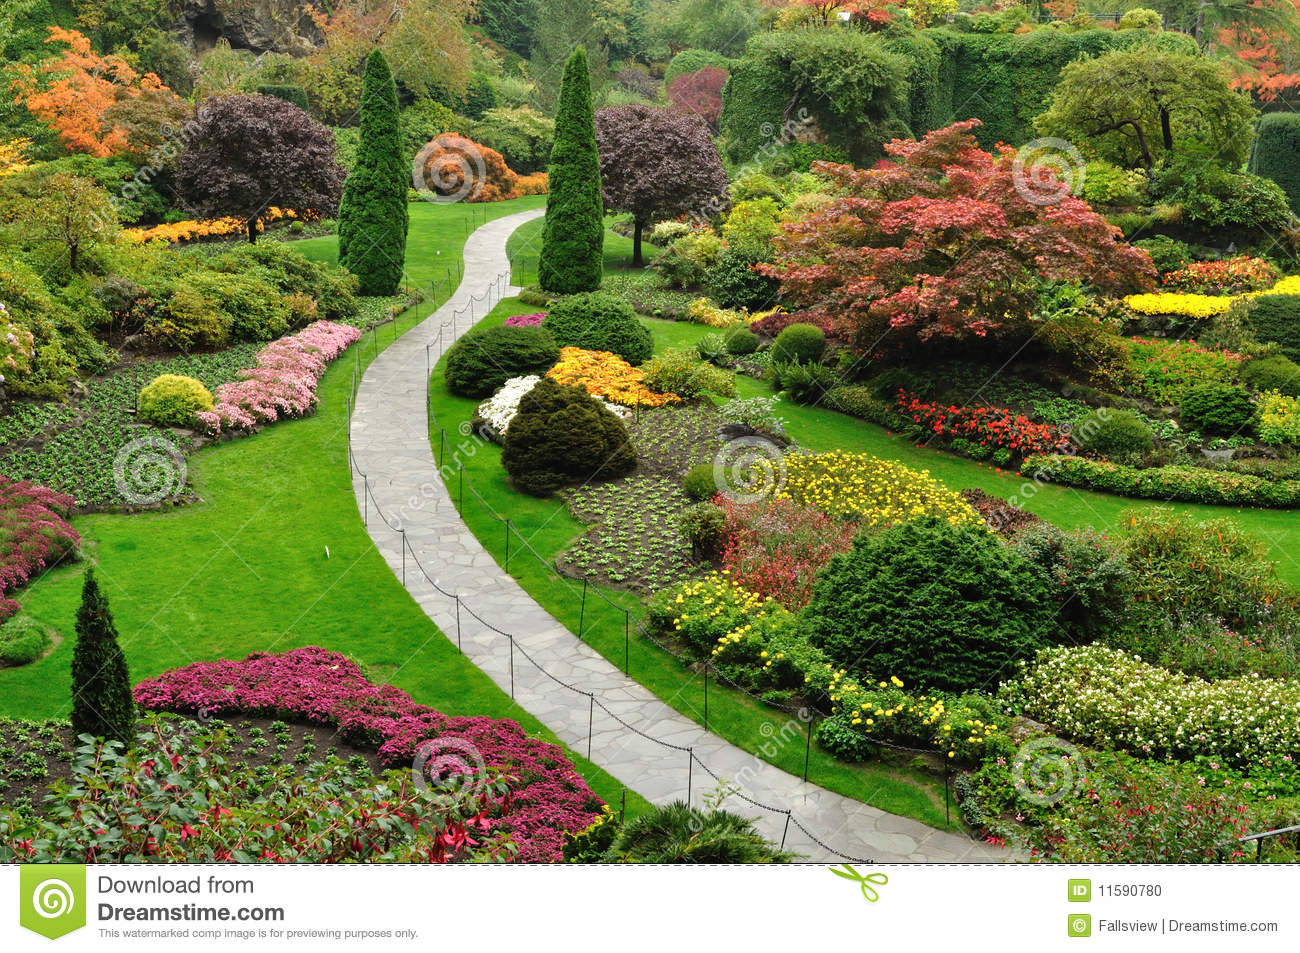 Am nagement de jardins photo stock image 11590780 for Amenagement de jardin